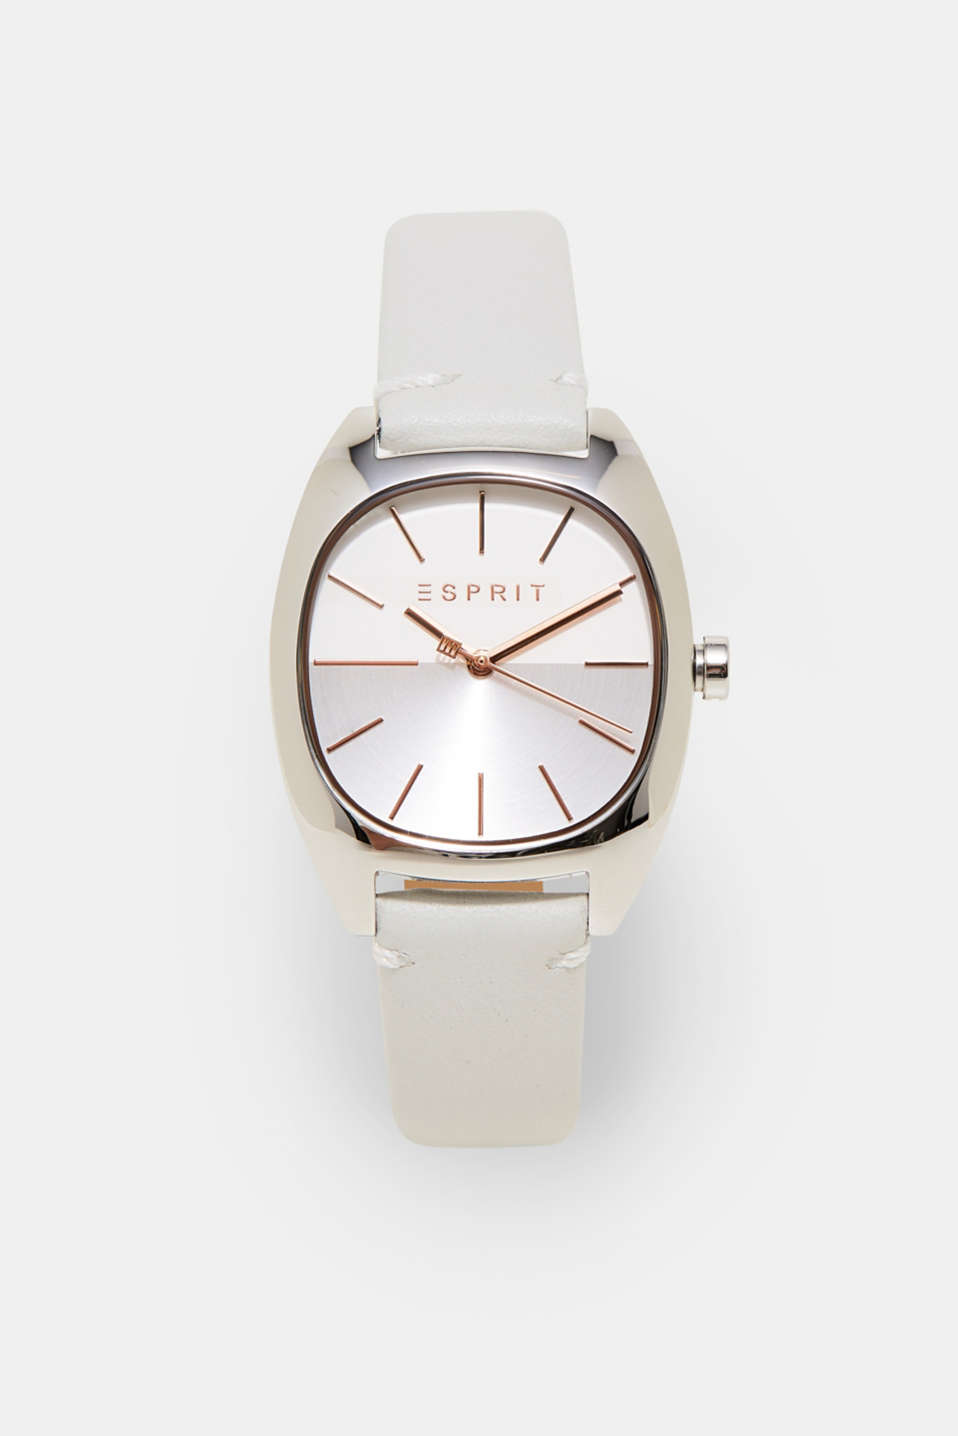 Esprit - Feminine watch with a leather strap